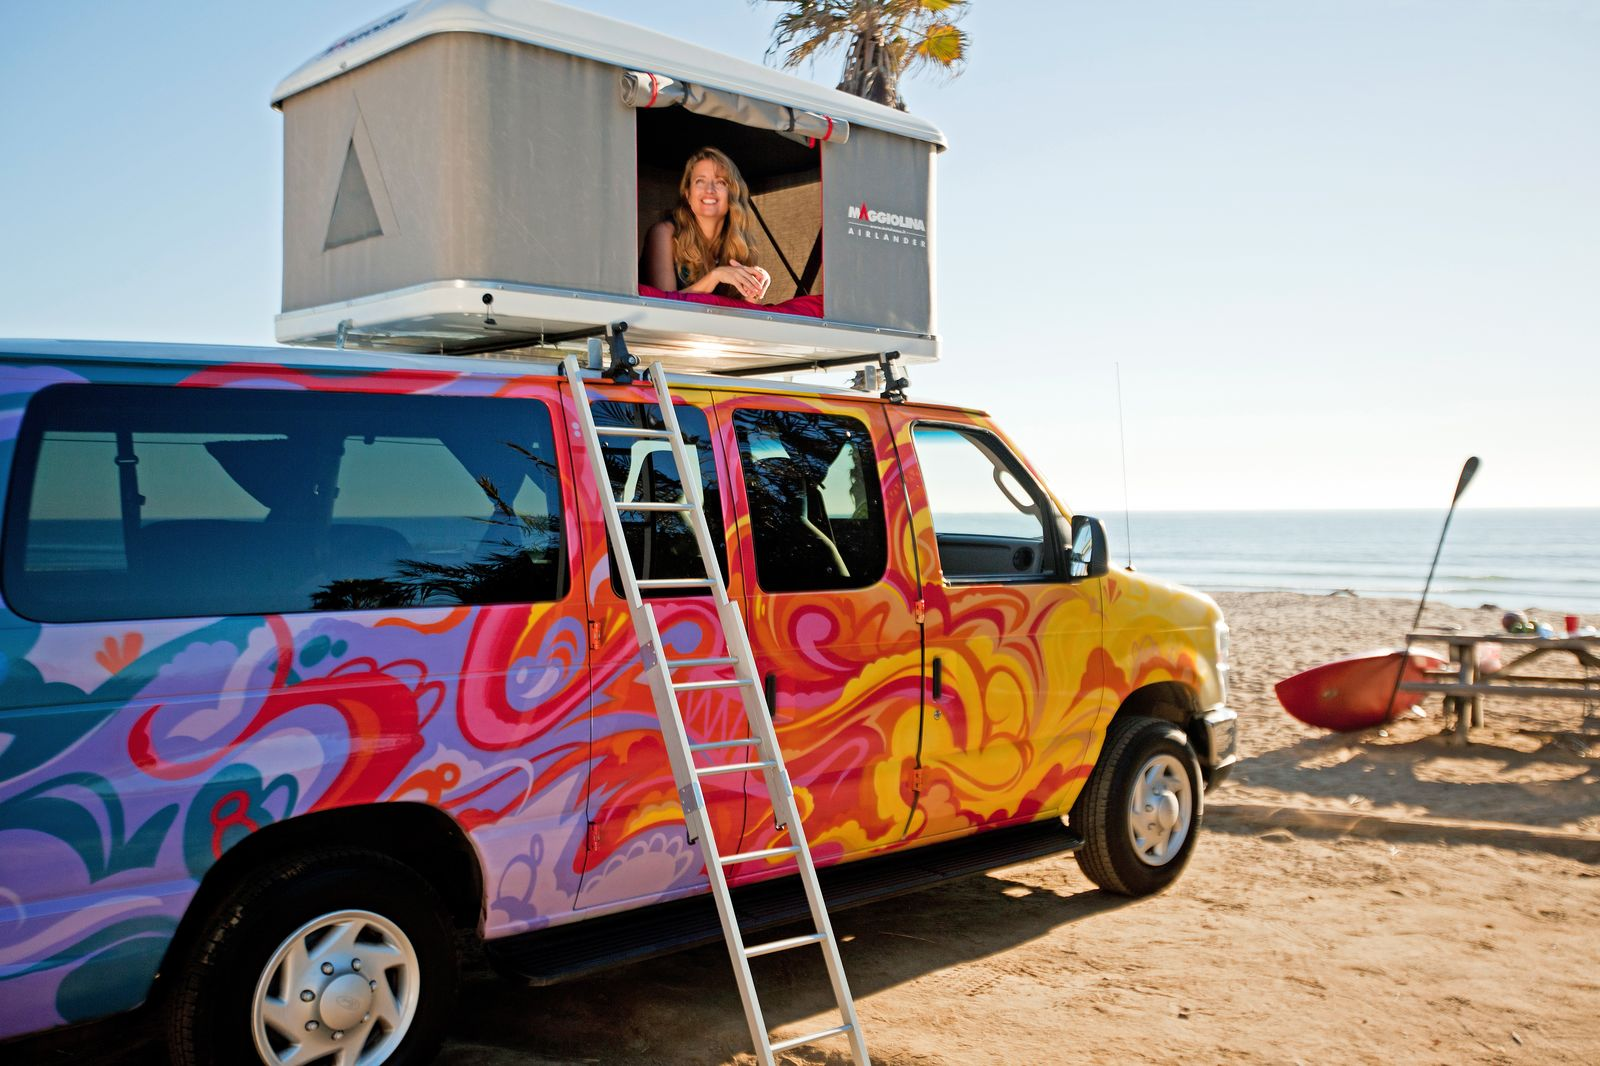 Camper Vans For Rent 11 Companies That Let You Try Van